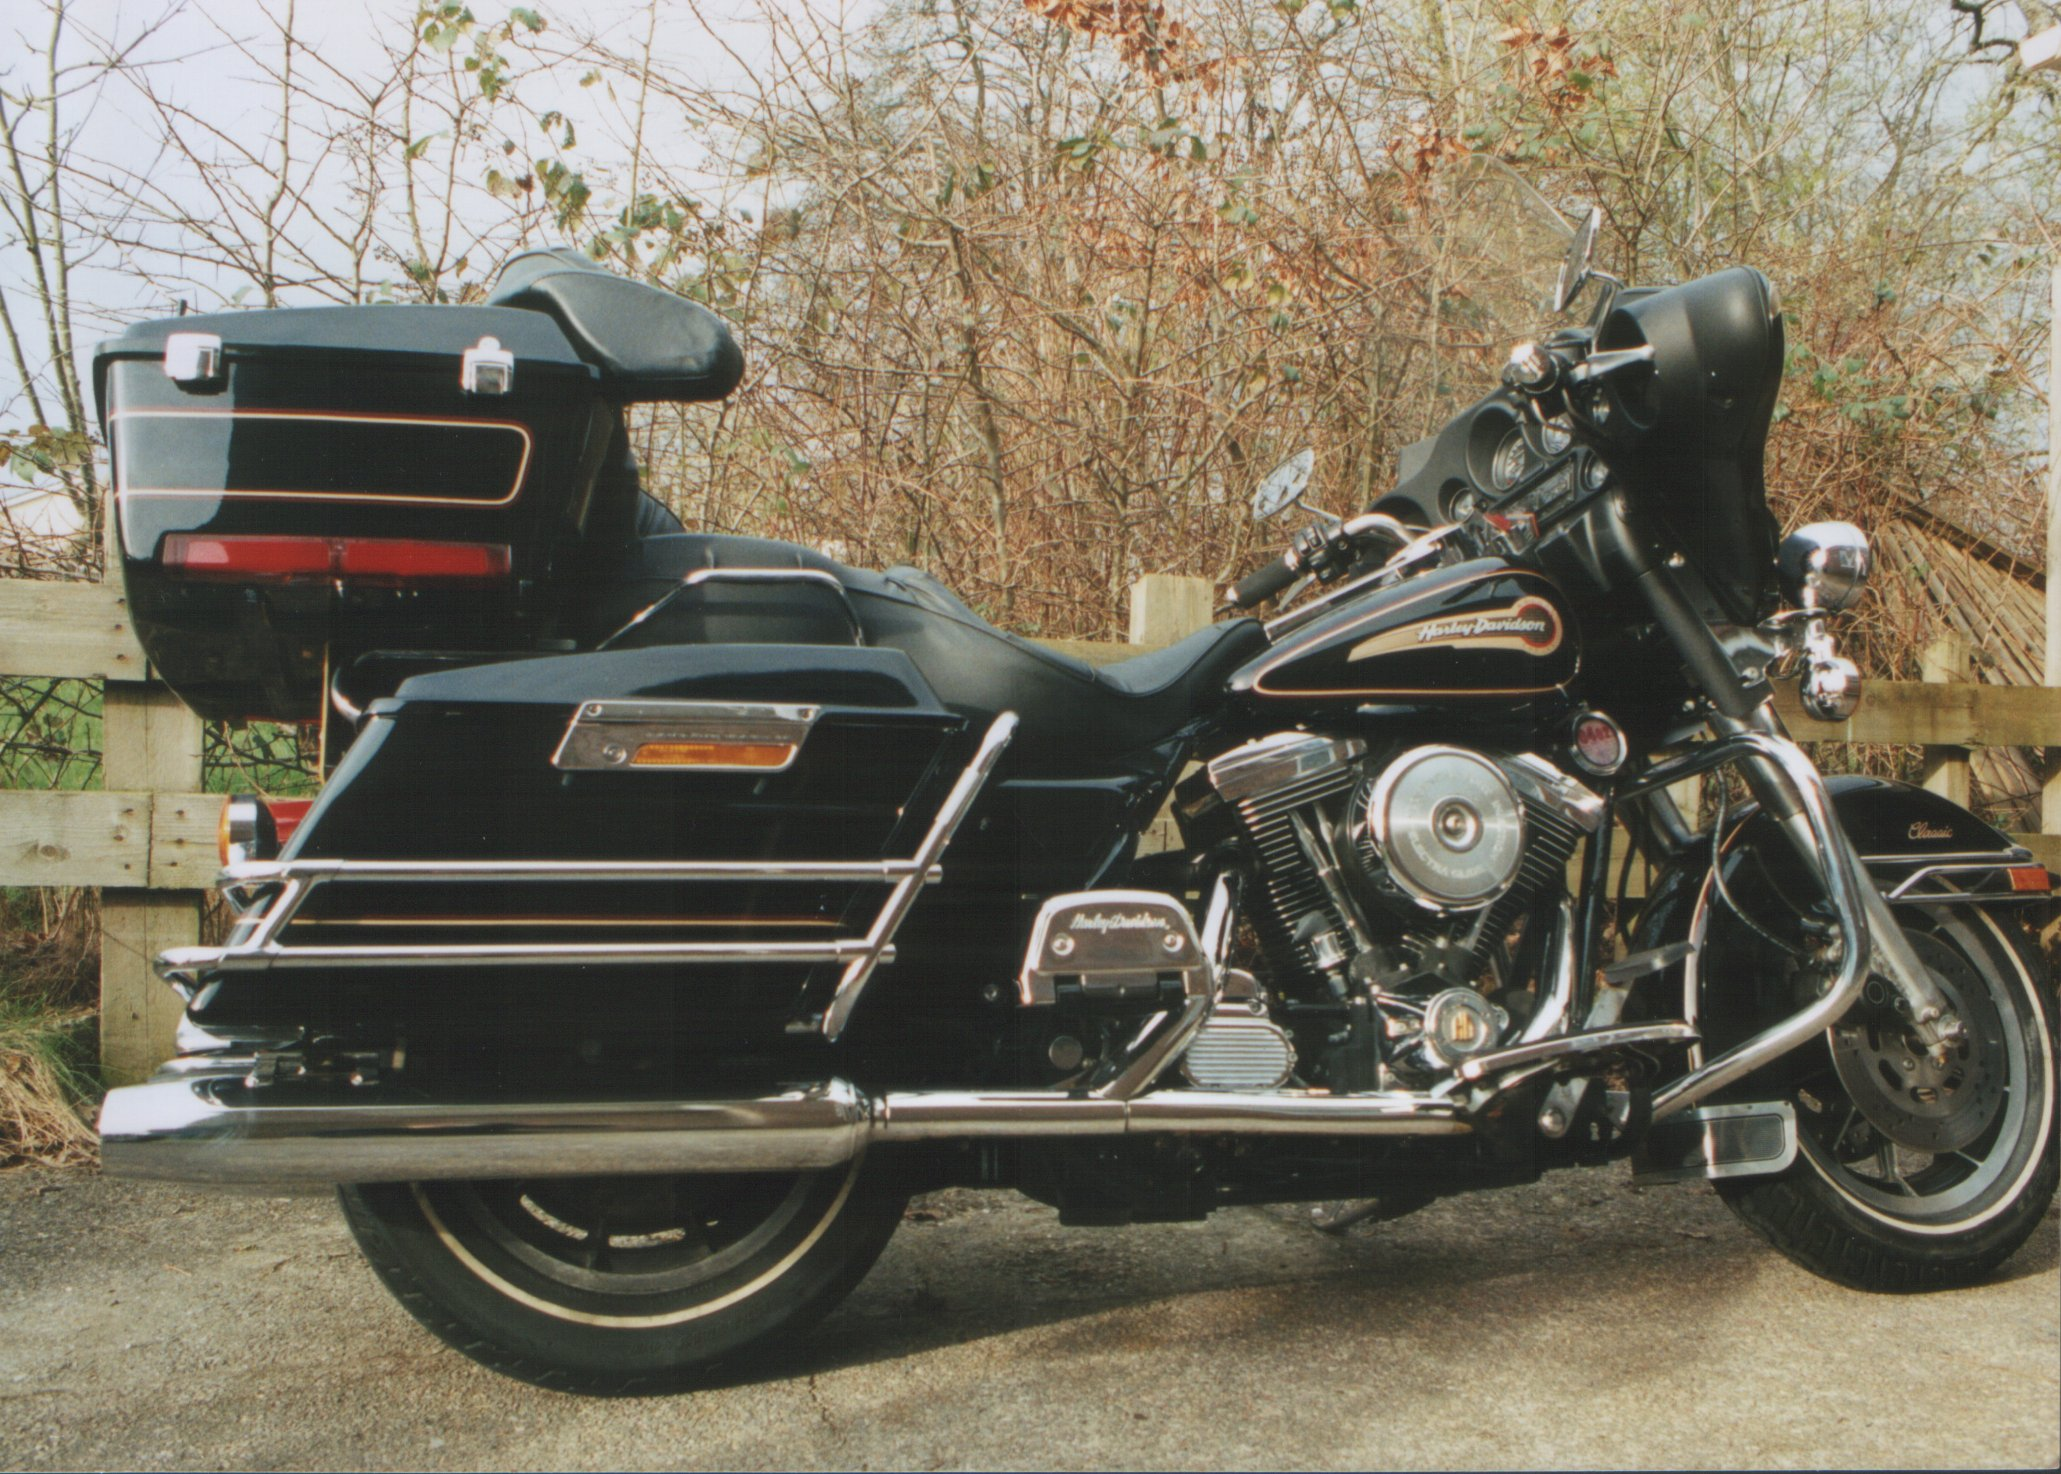 Harley-Davidson FLTC 1340 Tour Glide Classic (reduced effect) #9